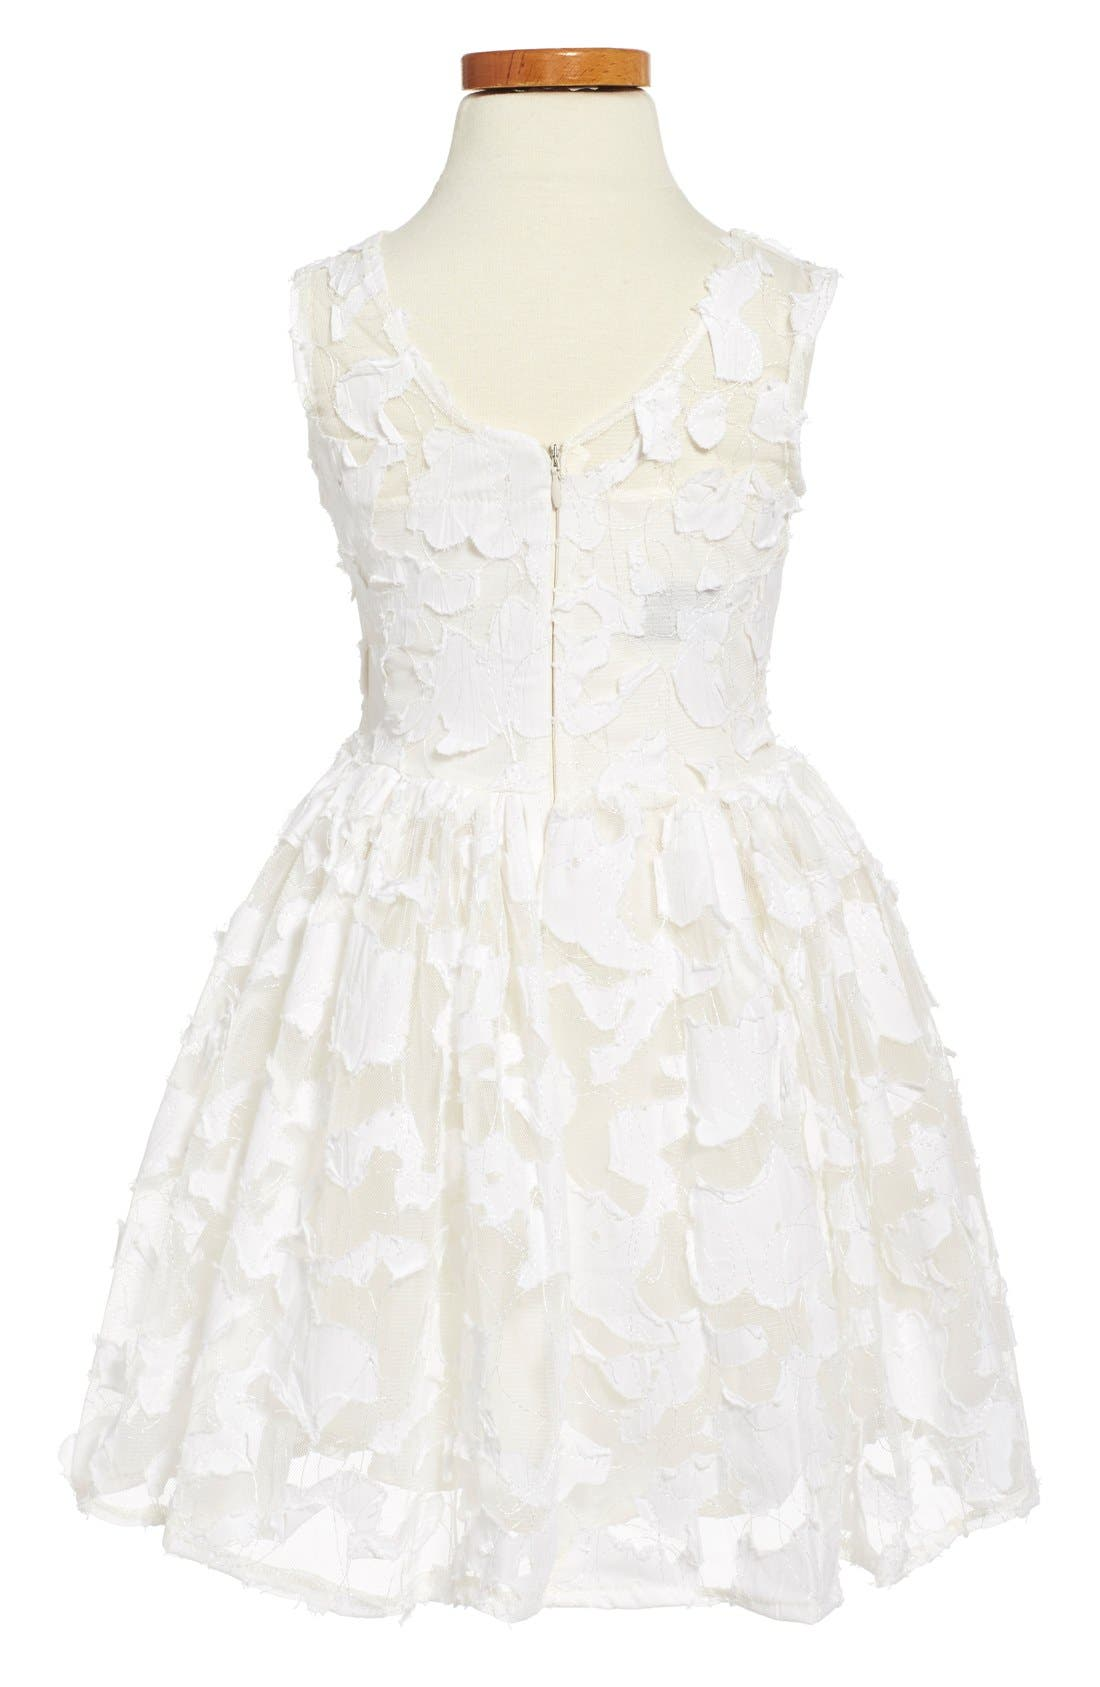 'Pretty in Ivory' Party Dress,                             Alternate thumbnail 5, color,                             900